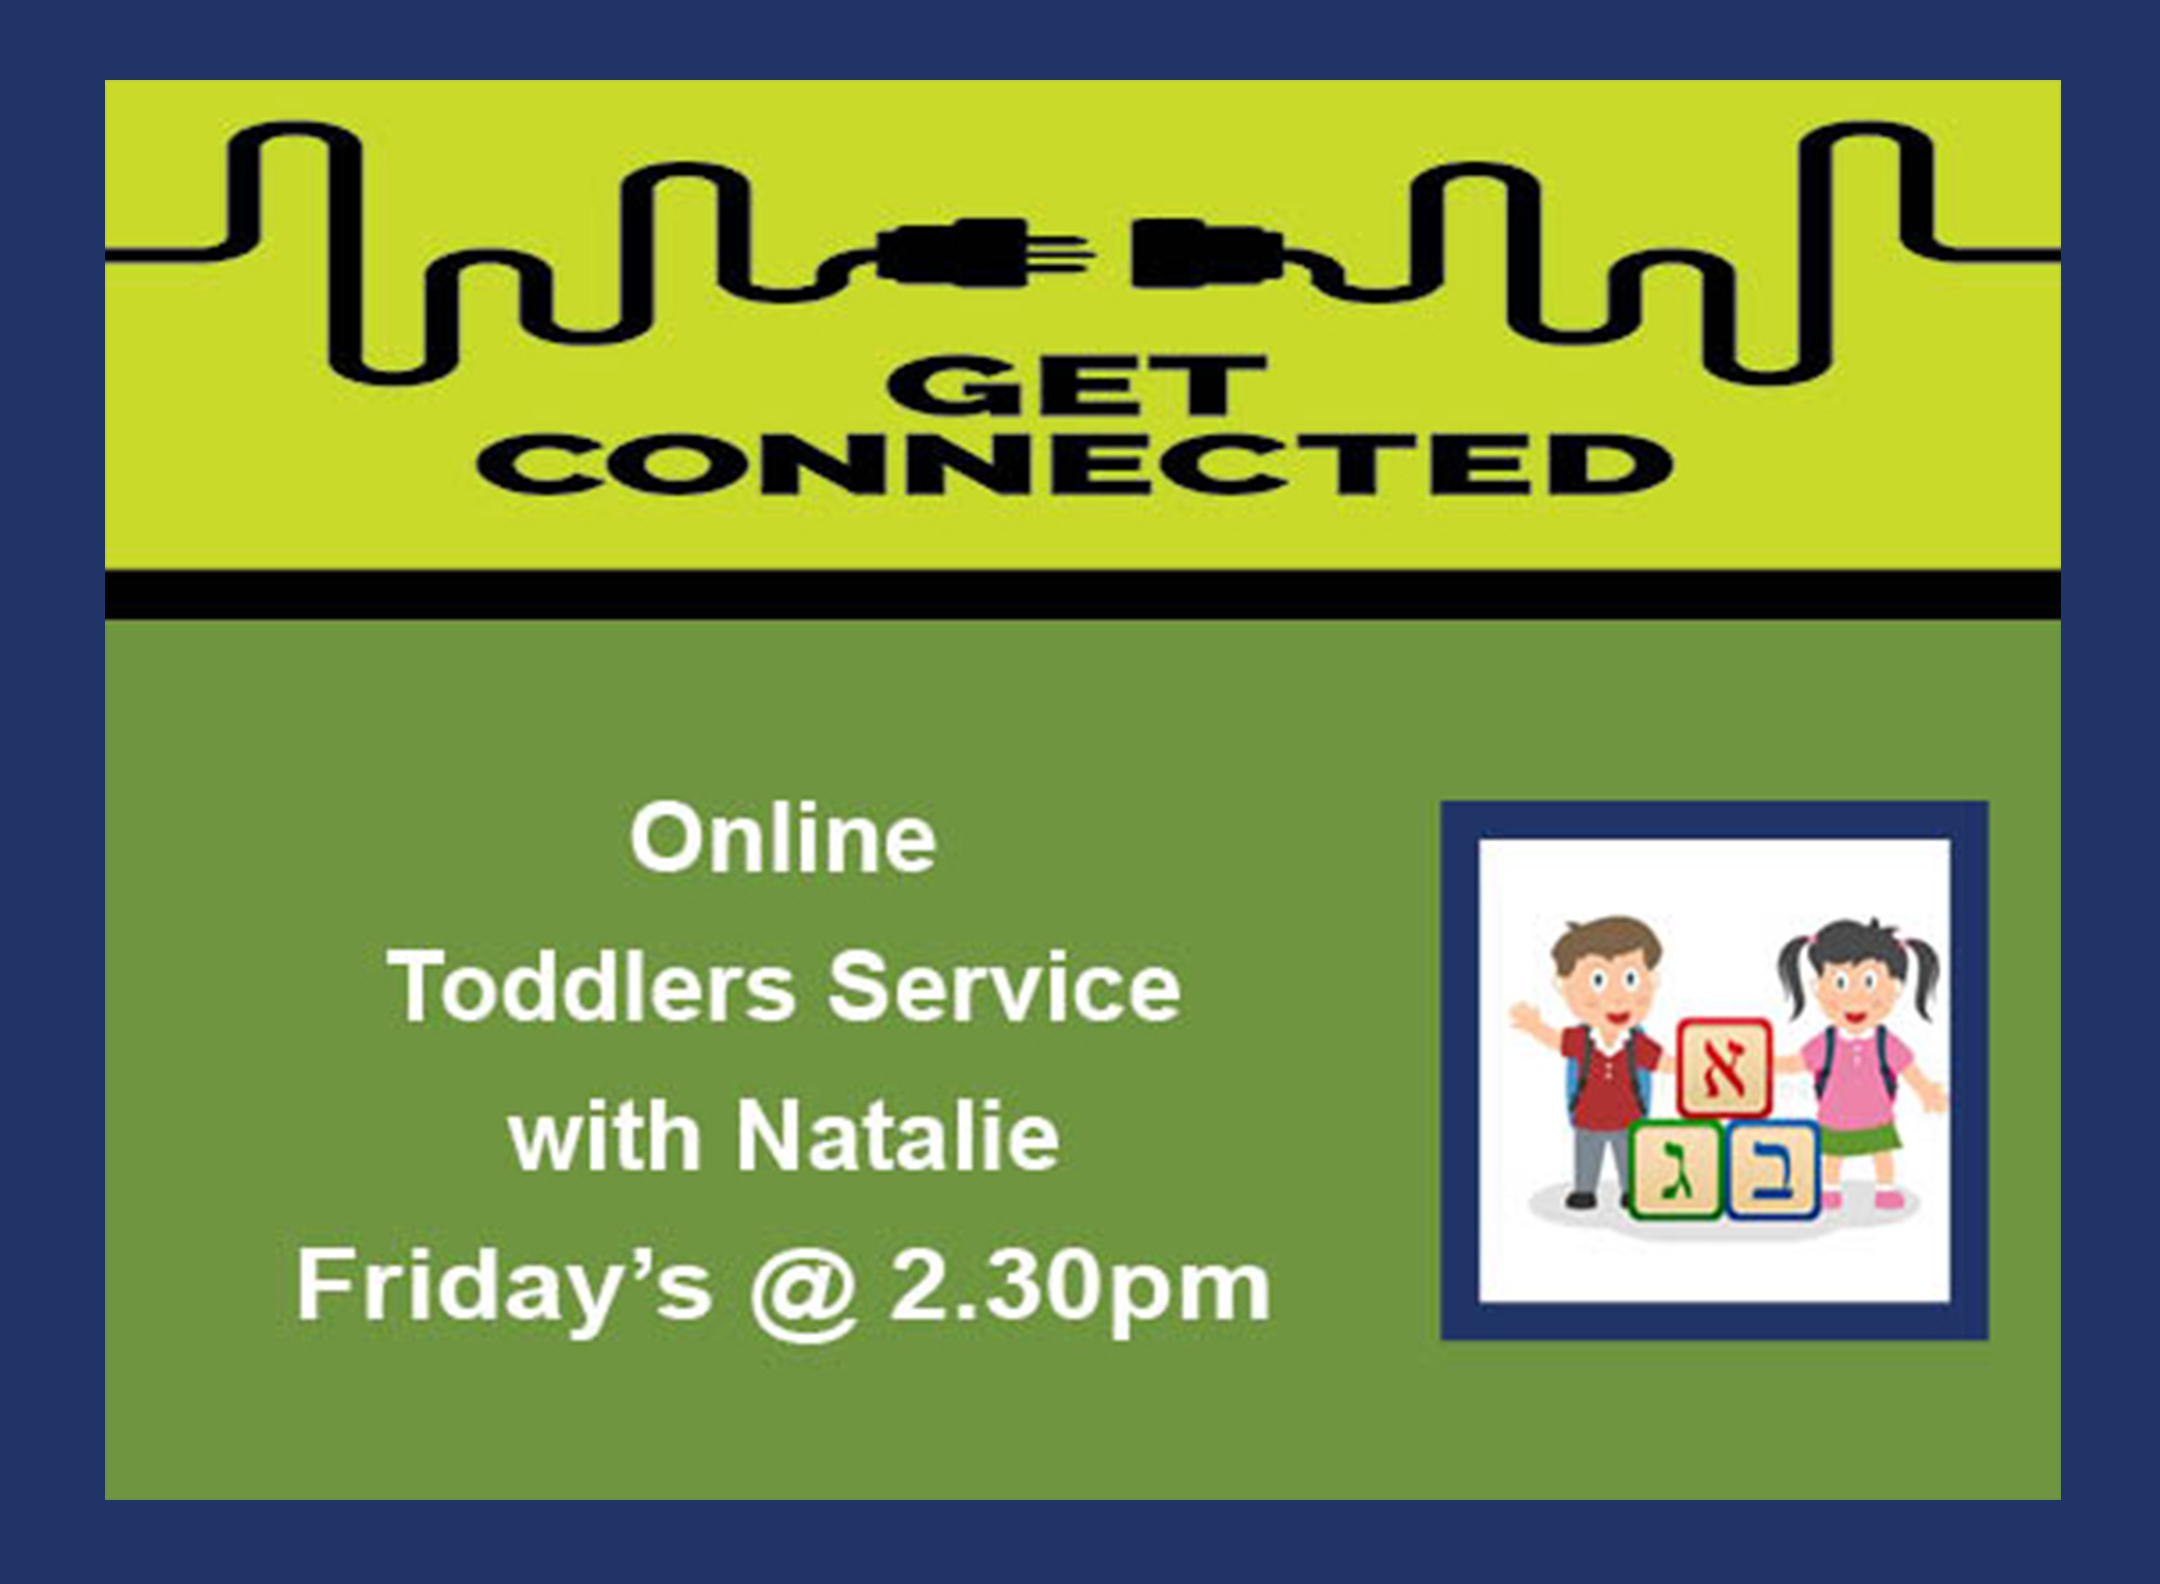 09 Toddlers Service Fridays 2.30pm